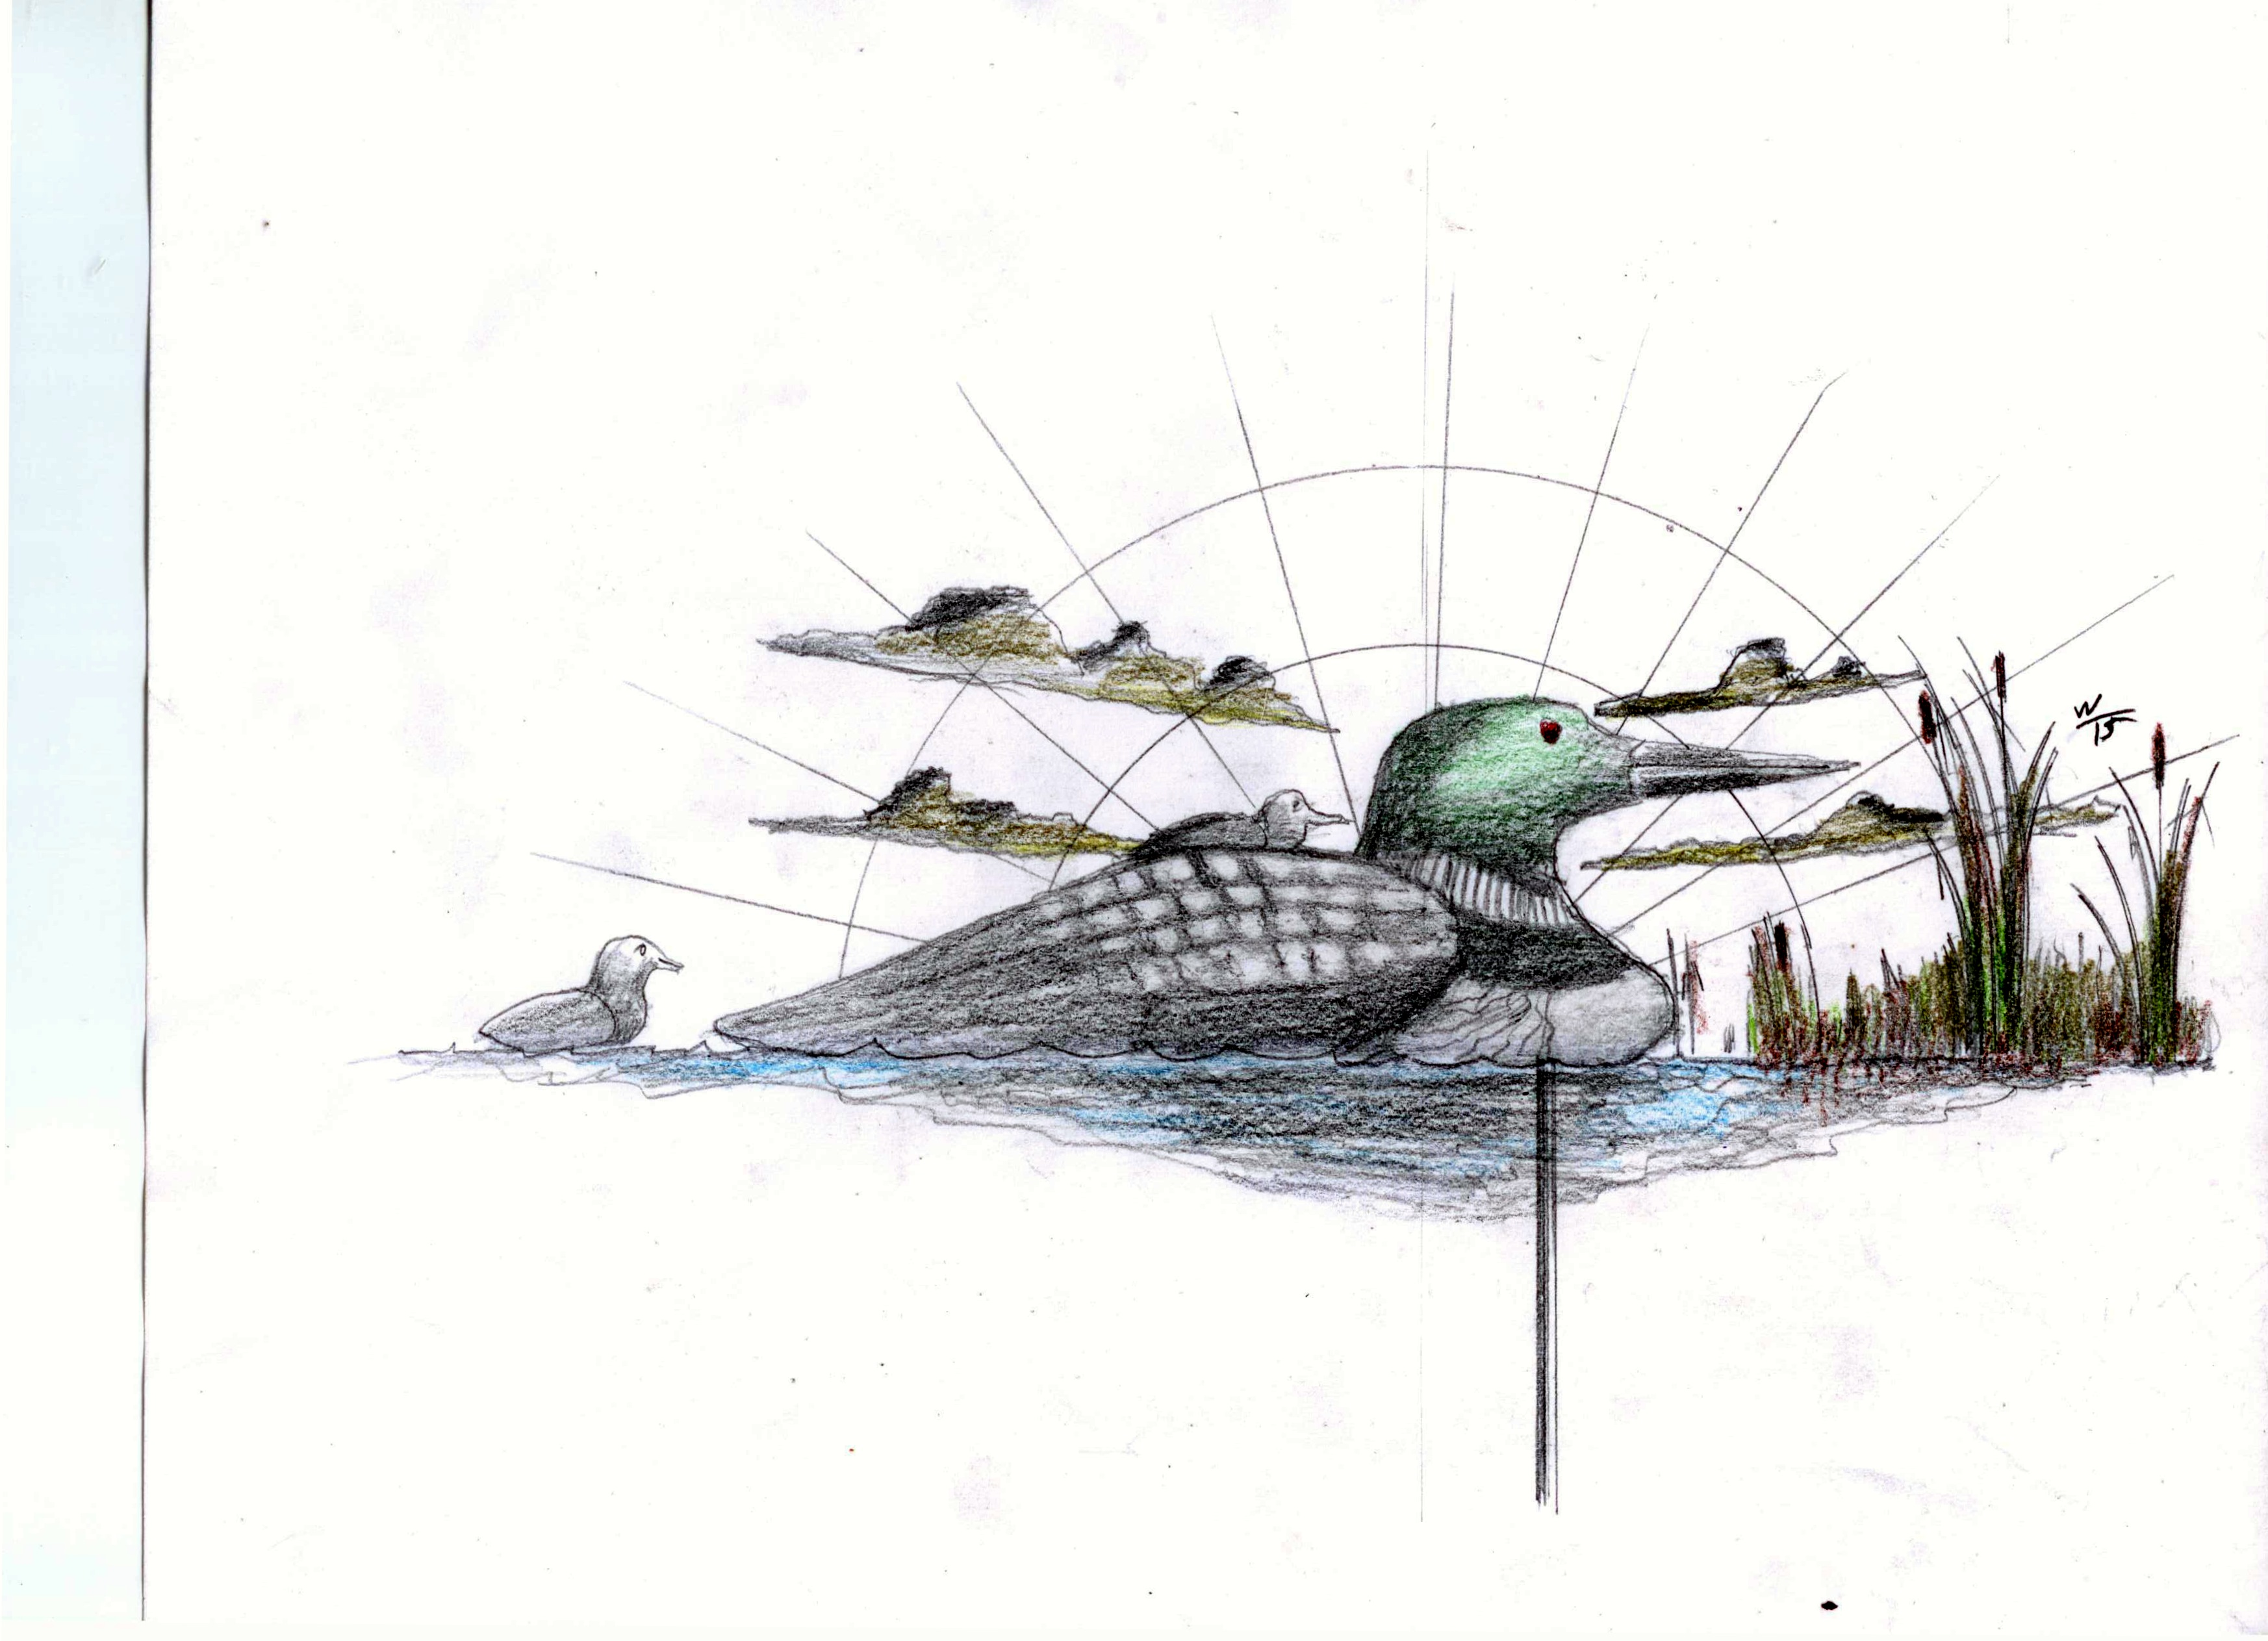 Loon weathervane proposal